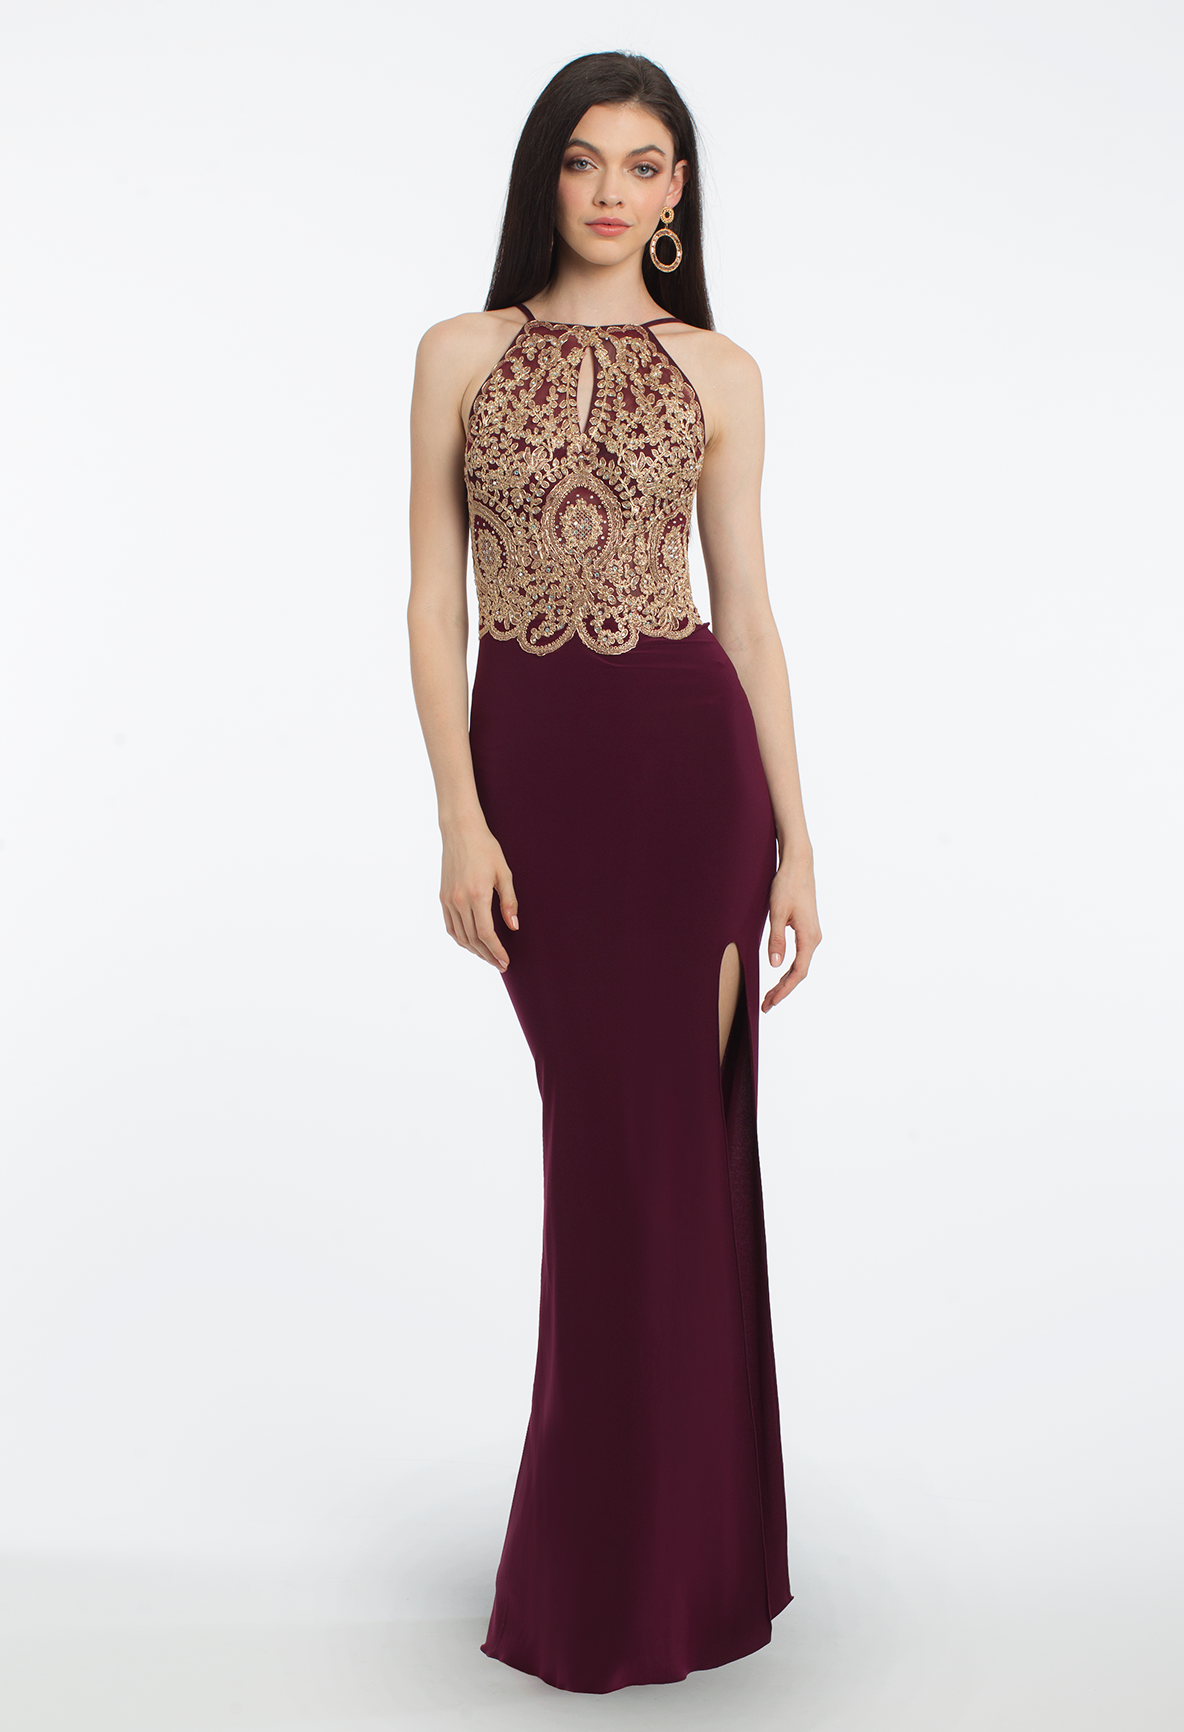 This posh evening gown is flawless for any formal event! With its ...